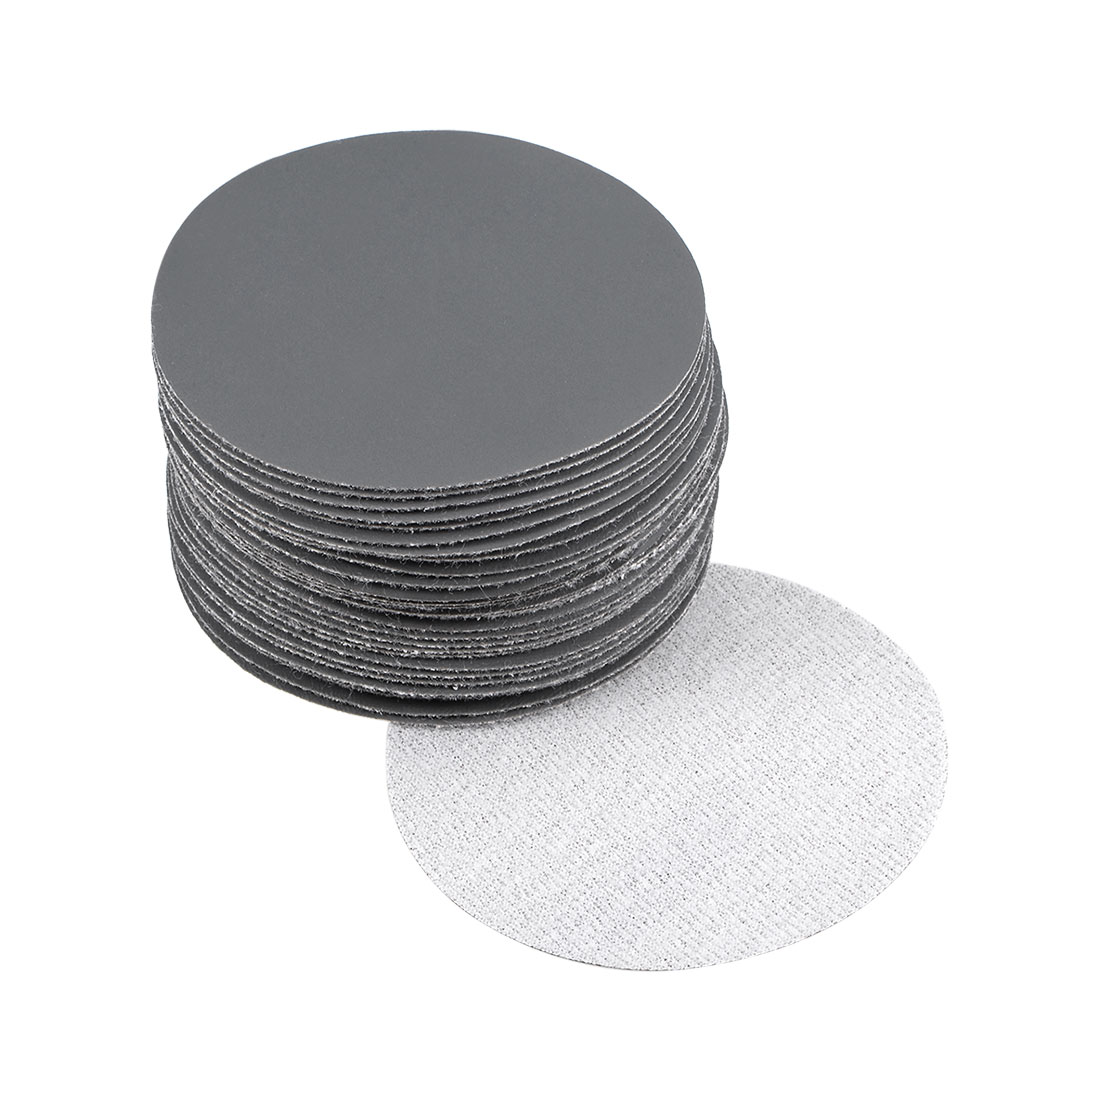 3 inch Wet Dry Discs 2500 Grit Hook and Loop Sanding Disc Silicon Carbide 30pcs